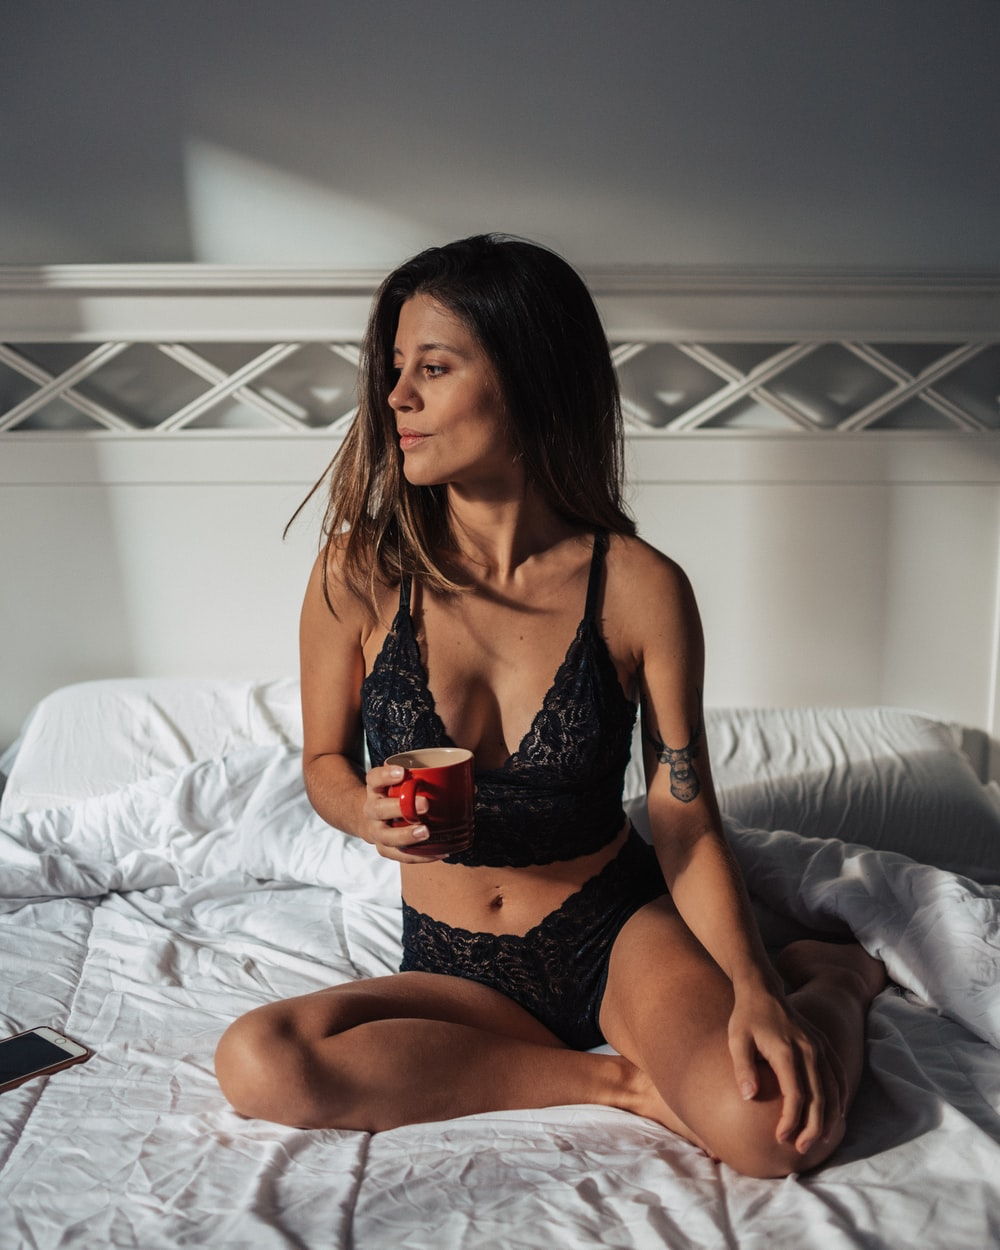 woman wearing black bra and panties sitting on bed